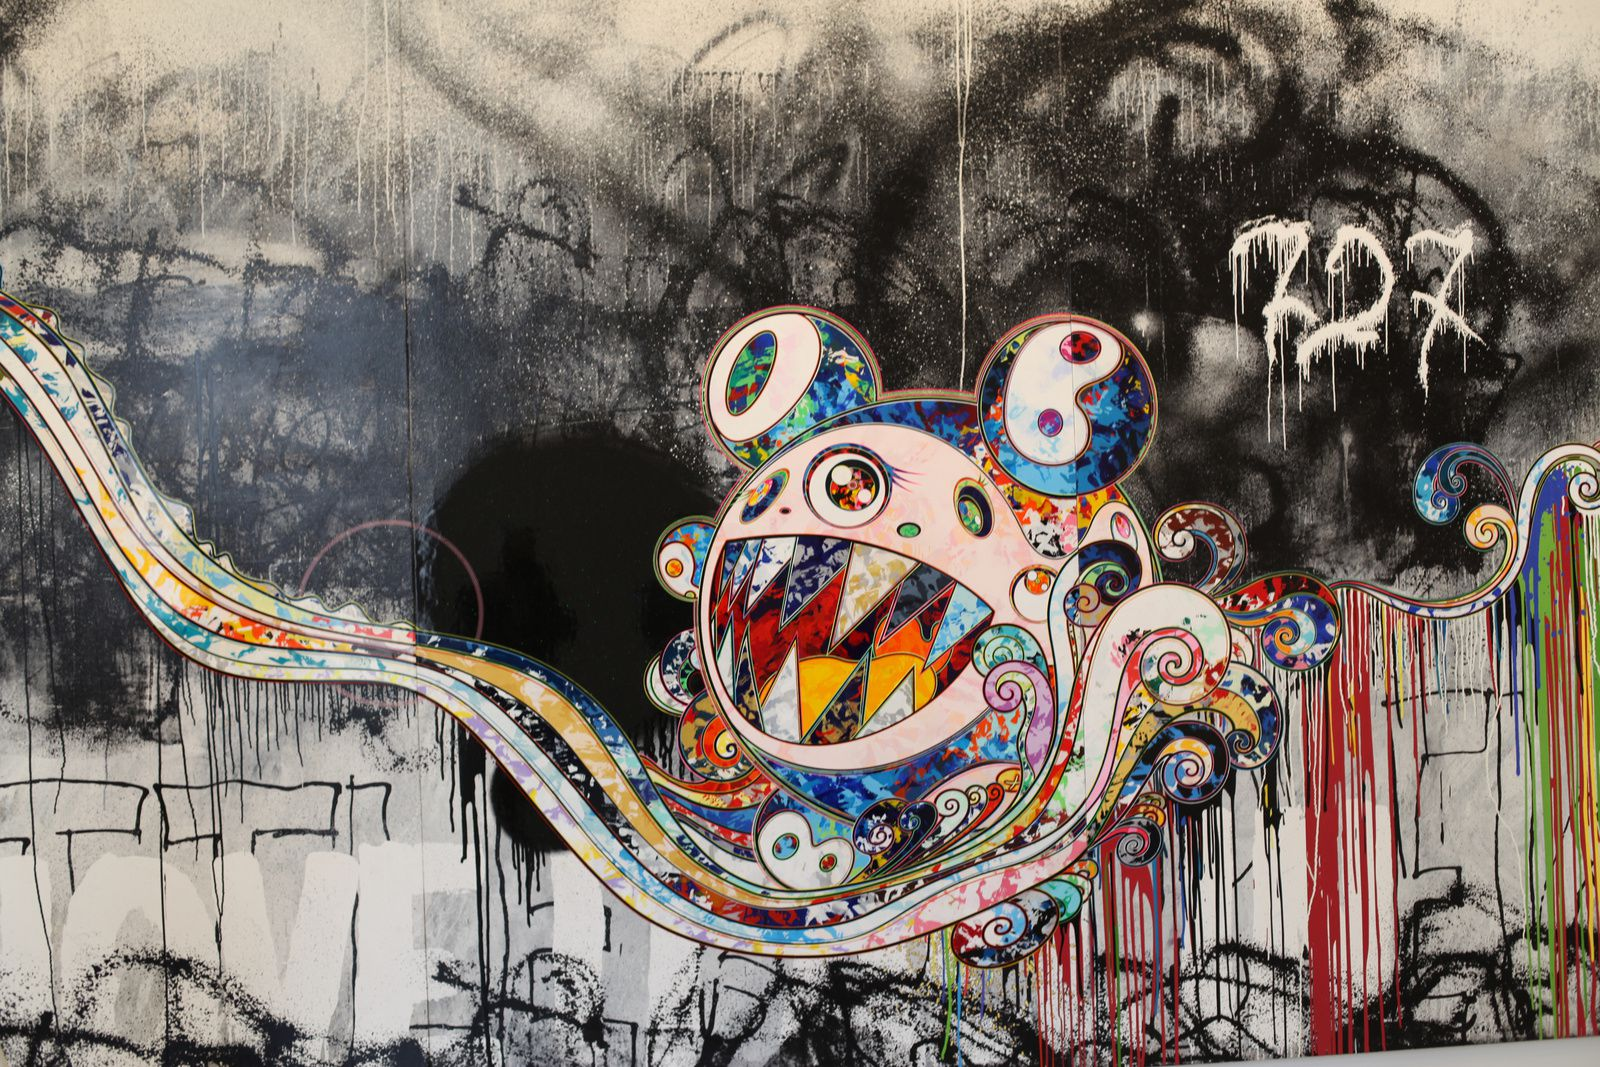 """727 (To be determined)"", 2016 de Takashi MURAKAMI - Galerie Perrotin © Photo Éric Simon"